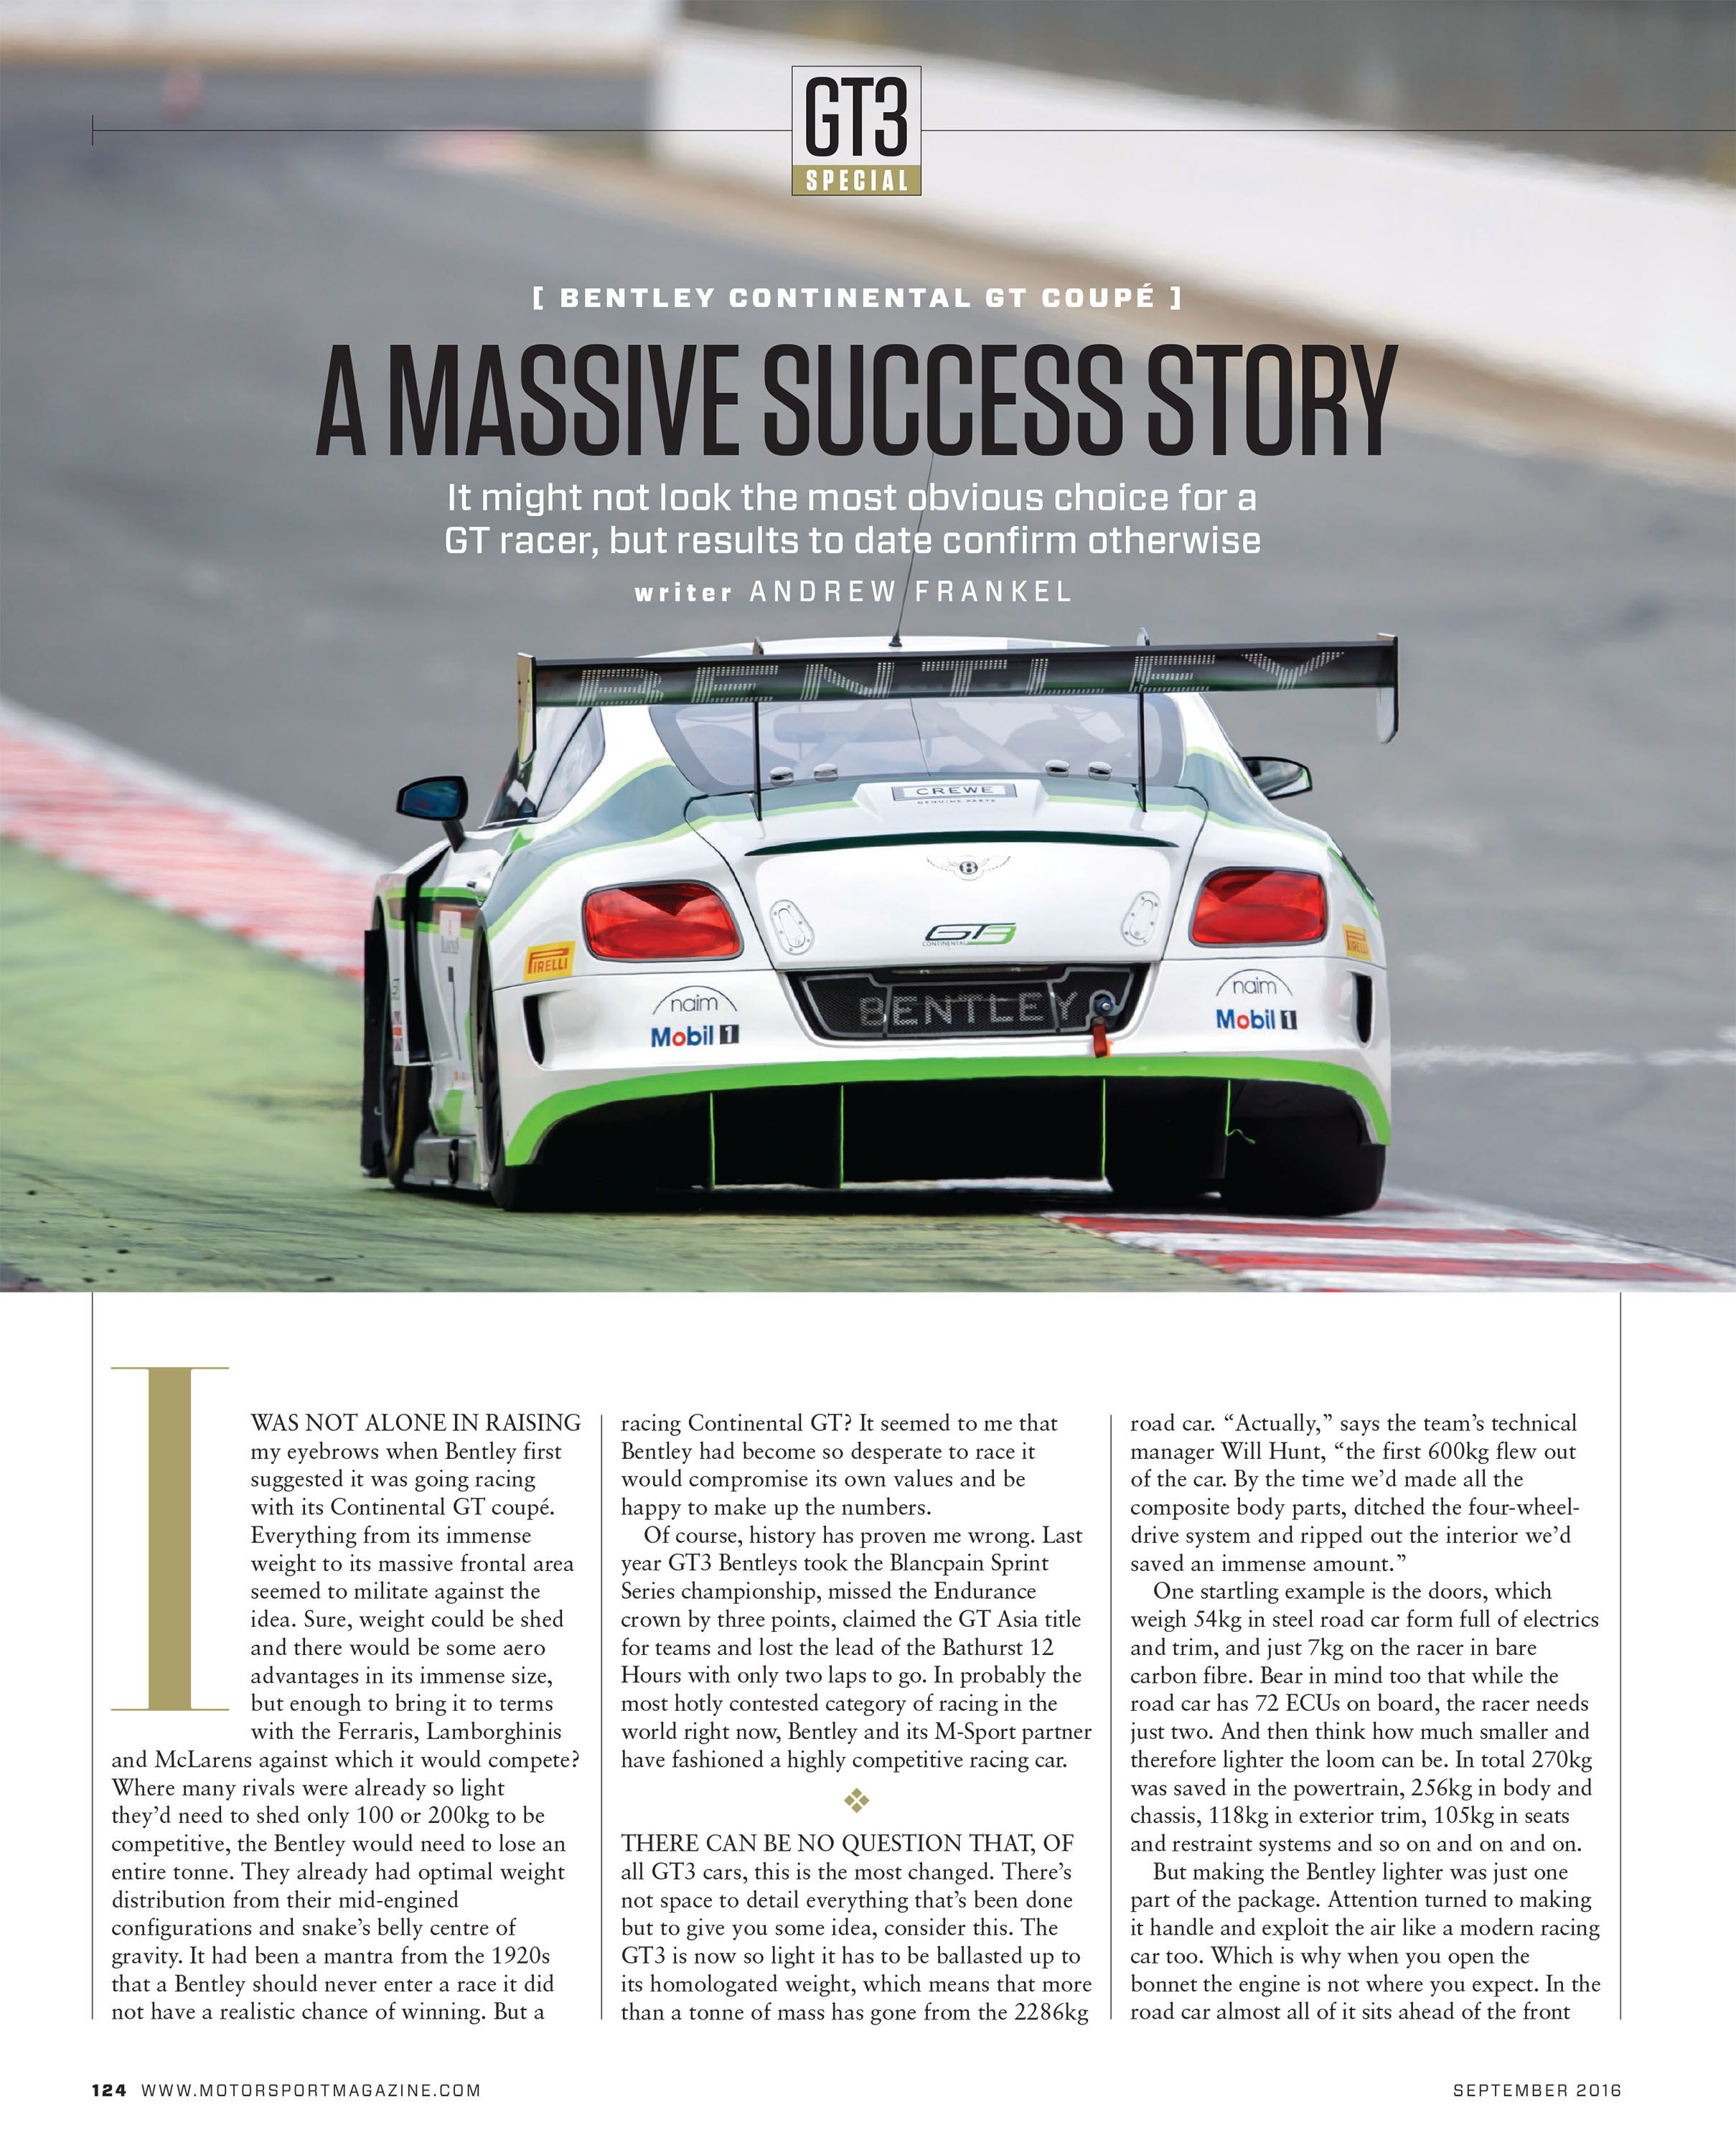 Bentley Continental Gt White Supersport Car For Sale: How To Improve A Race Car